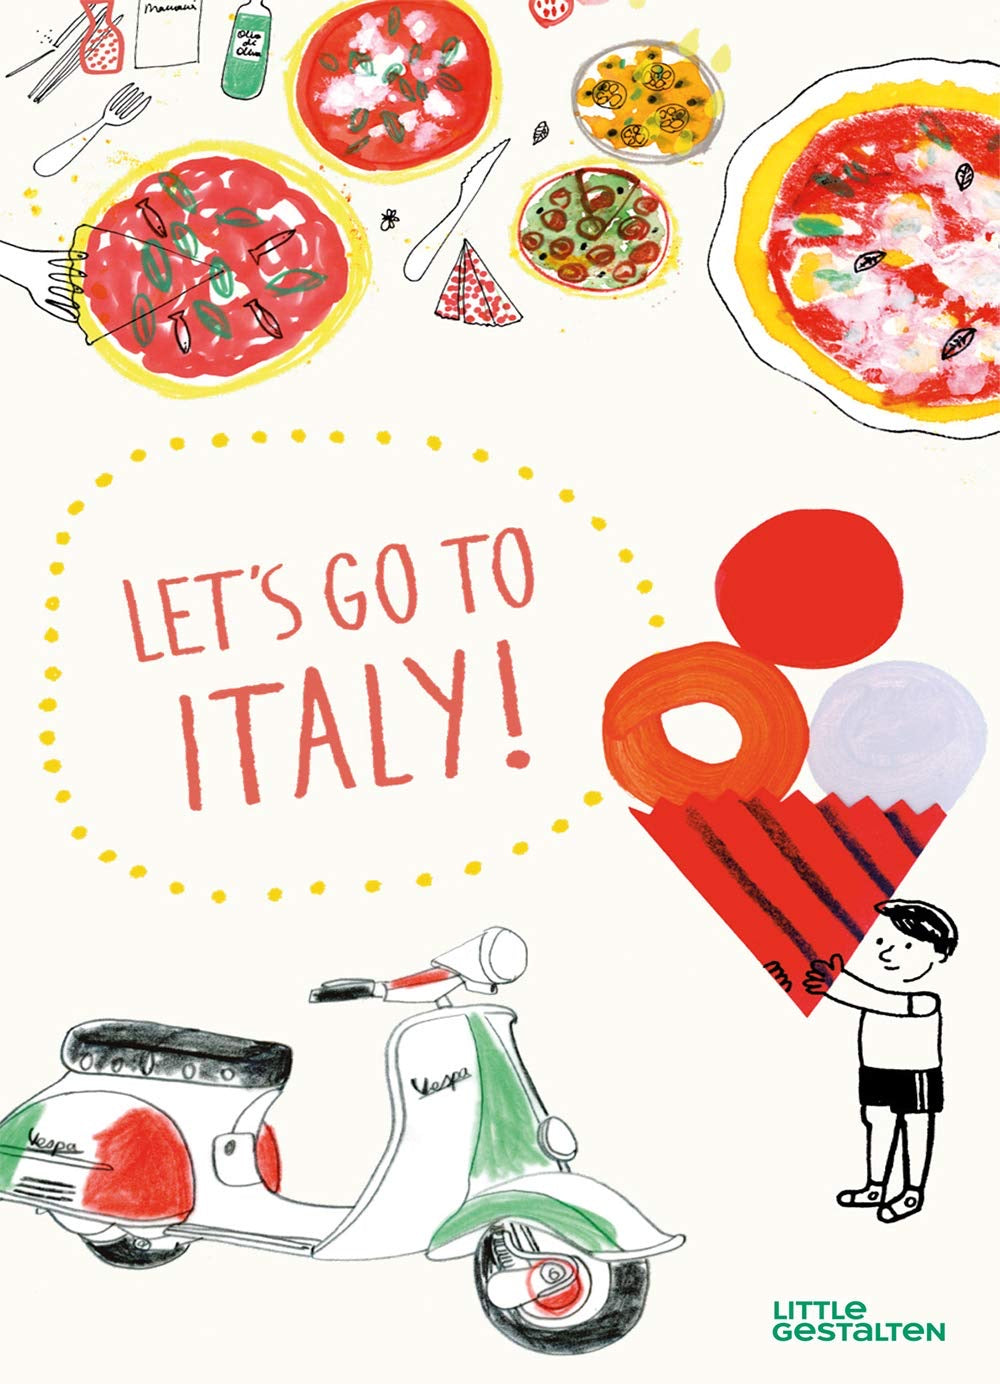 Let's Go to Italy!